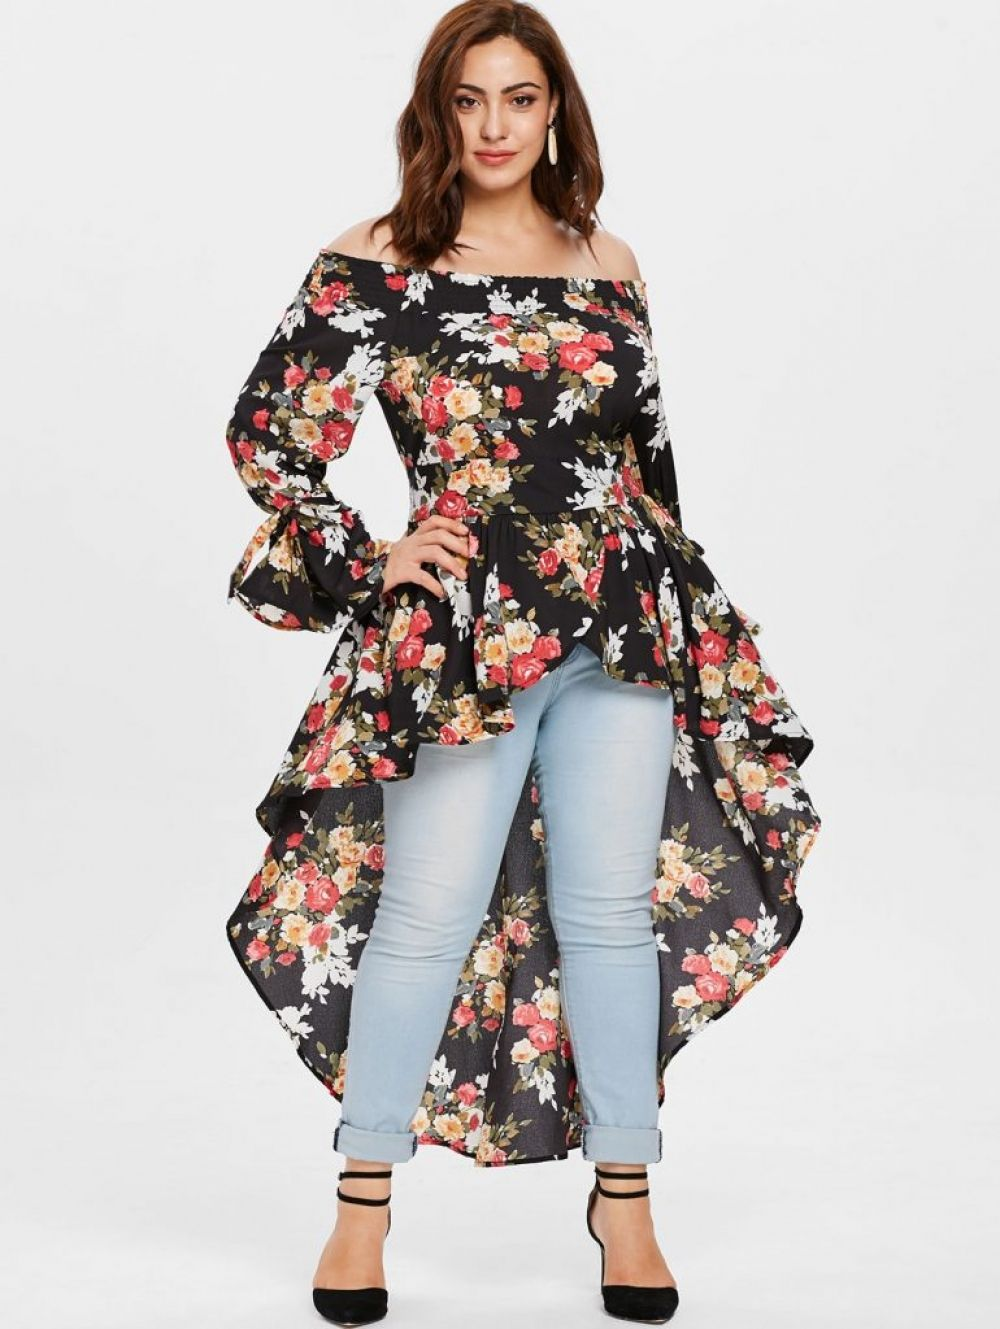 7ecab05f78d1f5 High Low Tops Plus Size Floral Shirts Price: 31.18 & FREE Shipping #clothing  #indozstyle